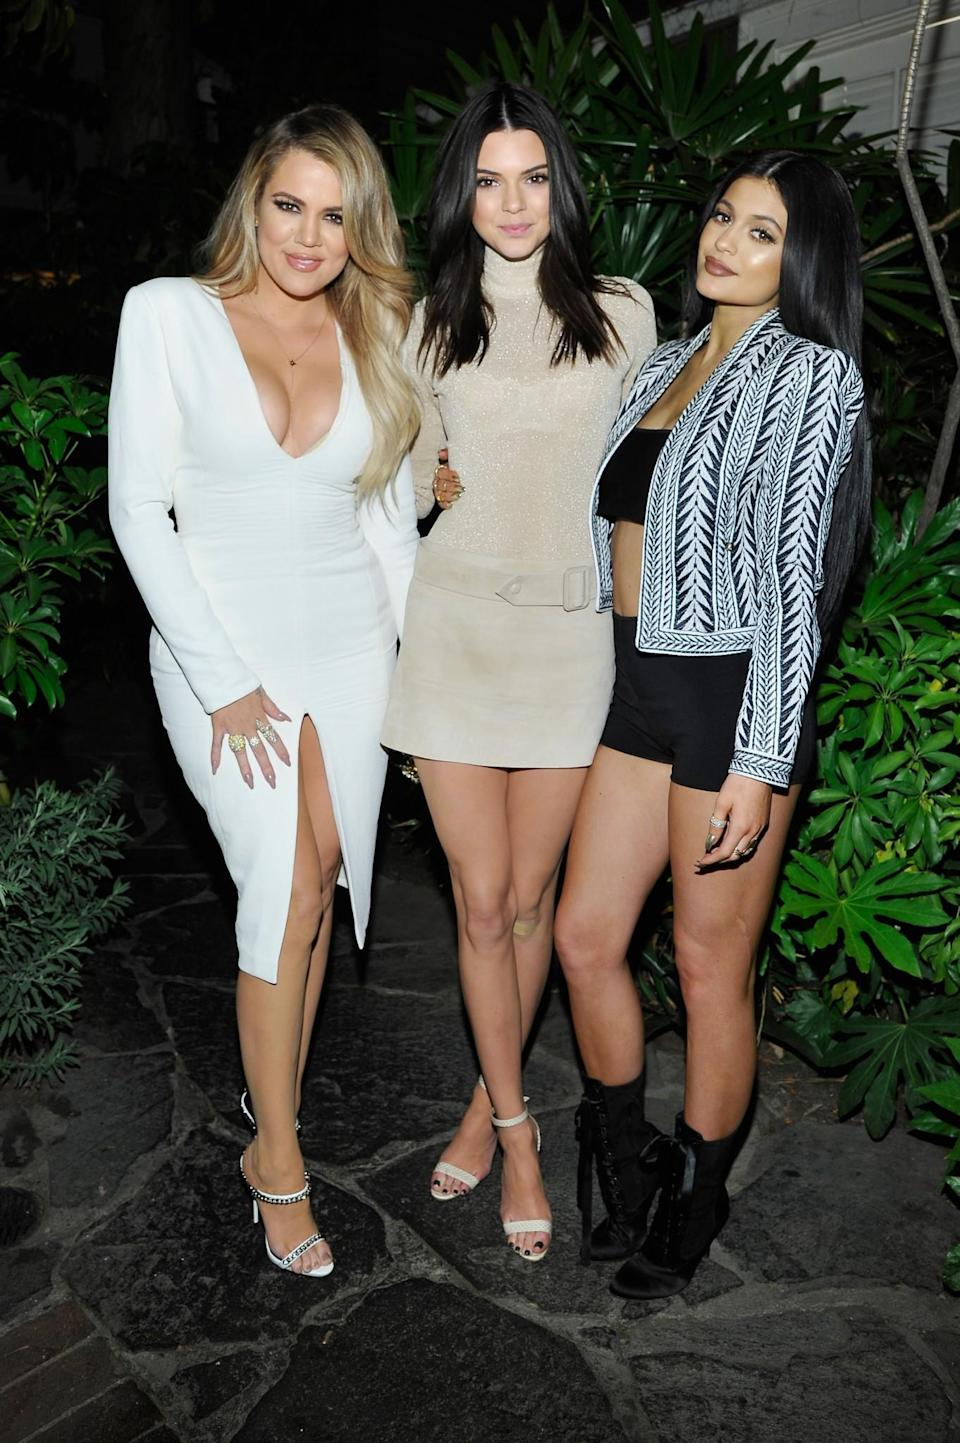 Khloe Kardashian, Kendall Jenner and Kylie Jenner in Los Angeles in 2015. (Photo: Getty Images)